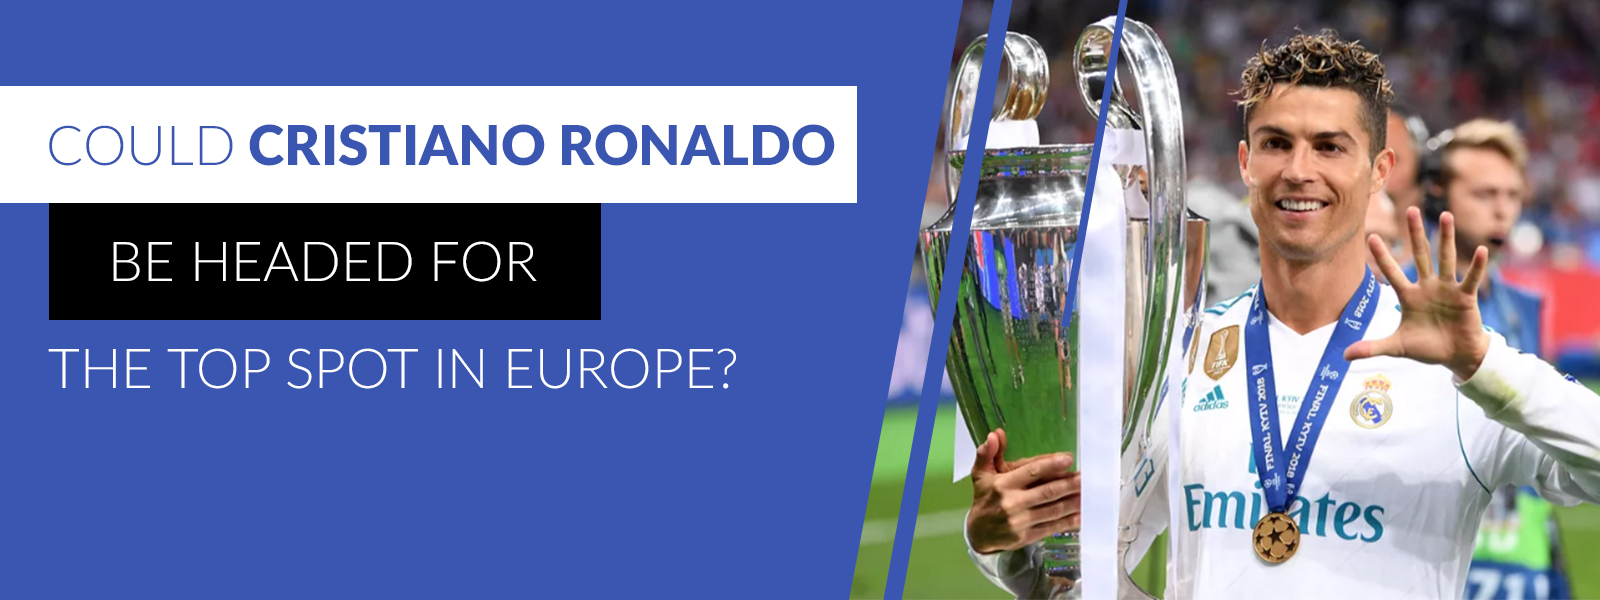 Cristiano Ronaldo Heading for The Top Spot in Europe